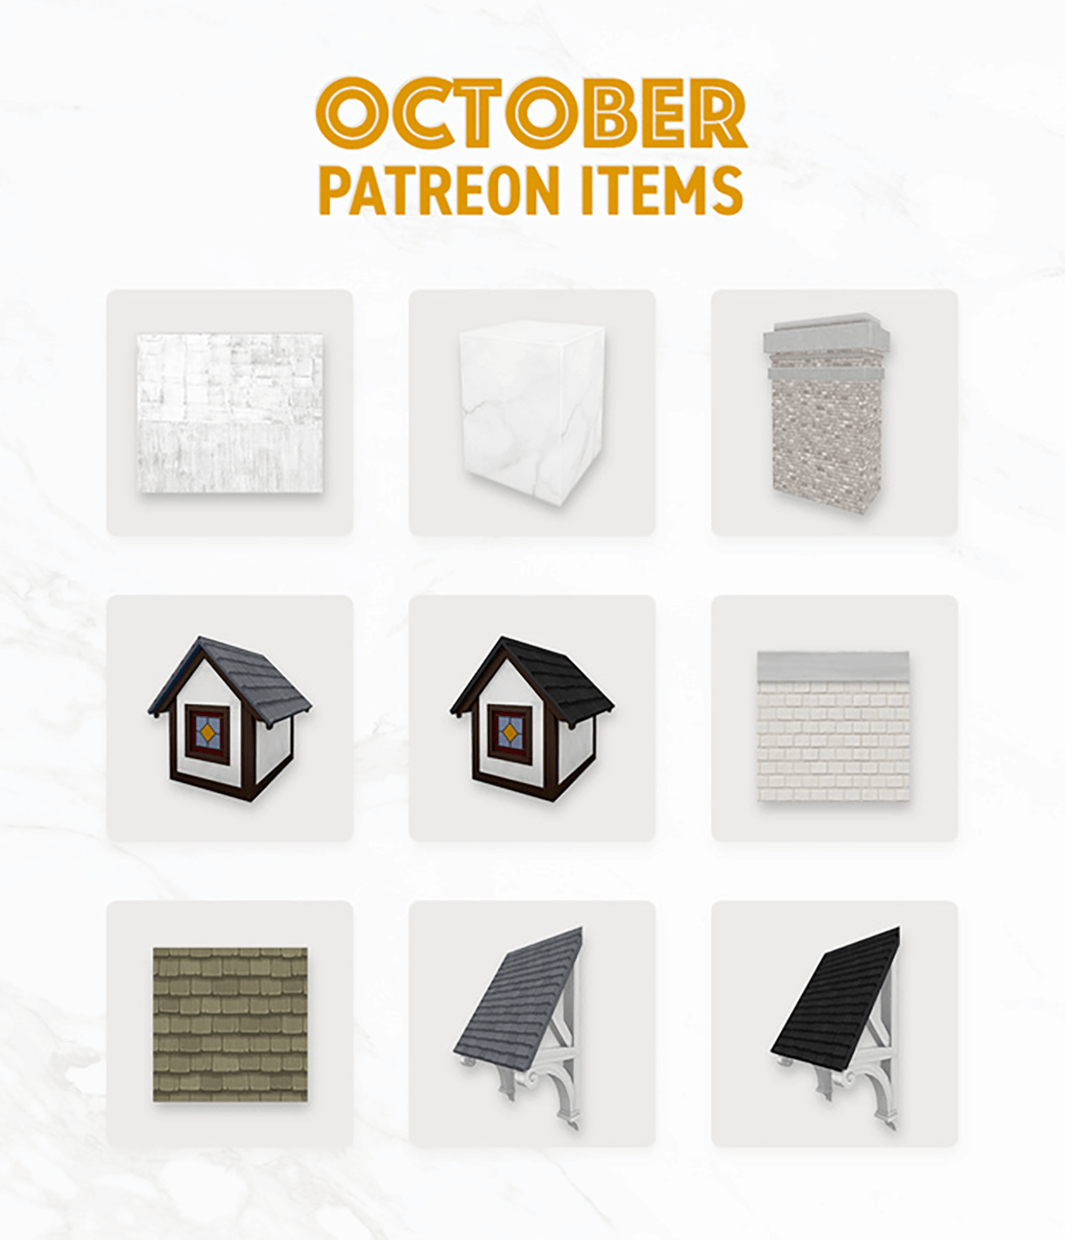 October PatreonItems by SimPlistic